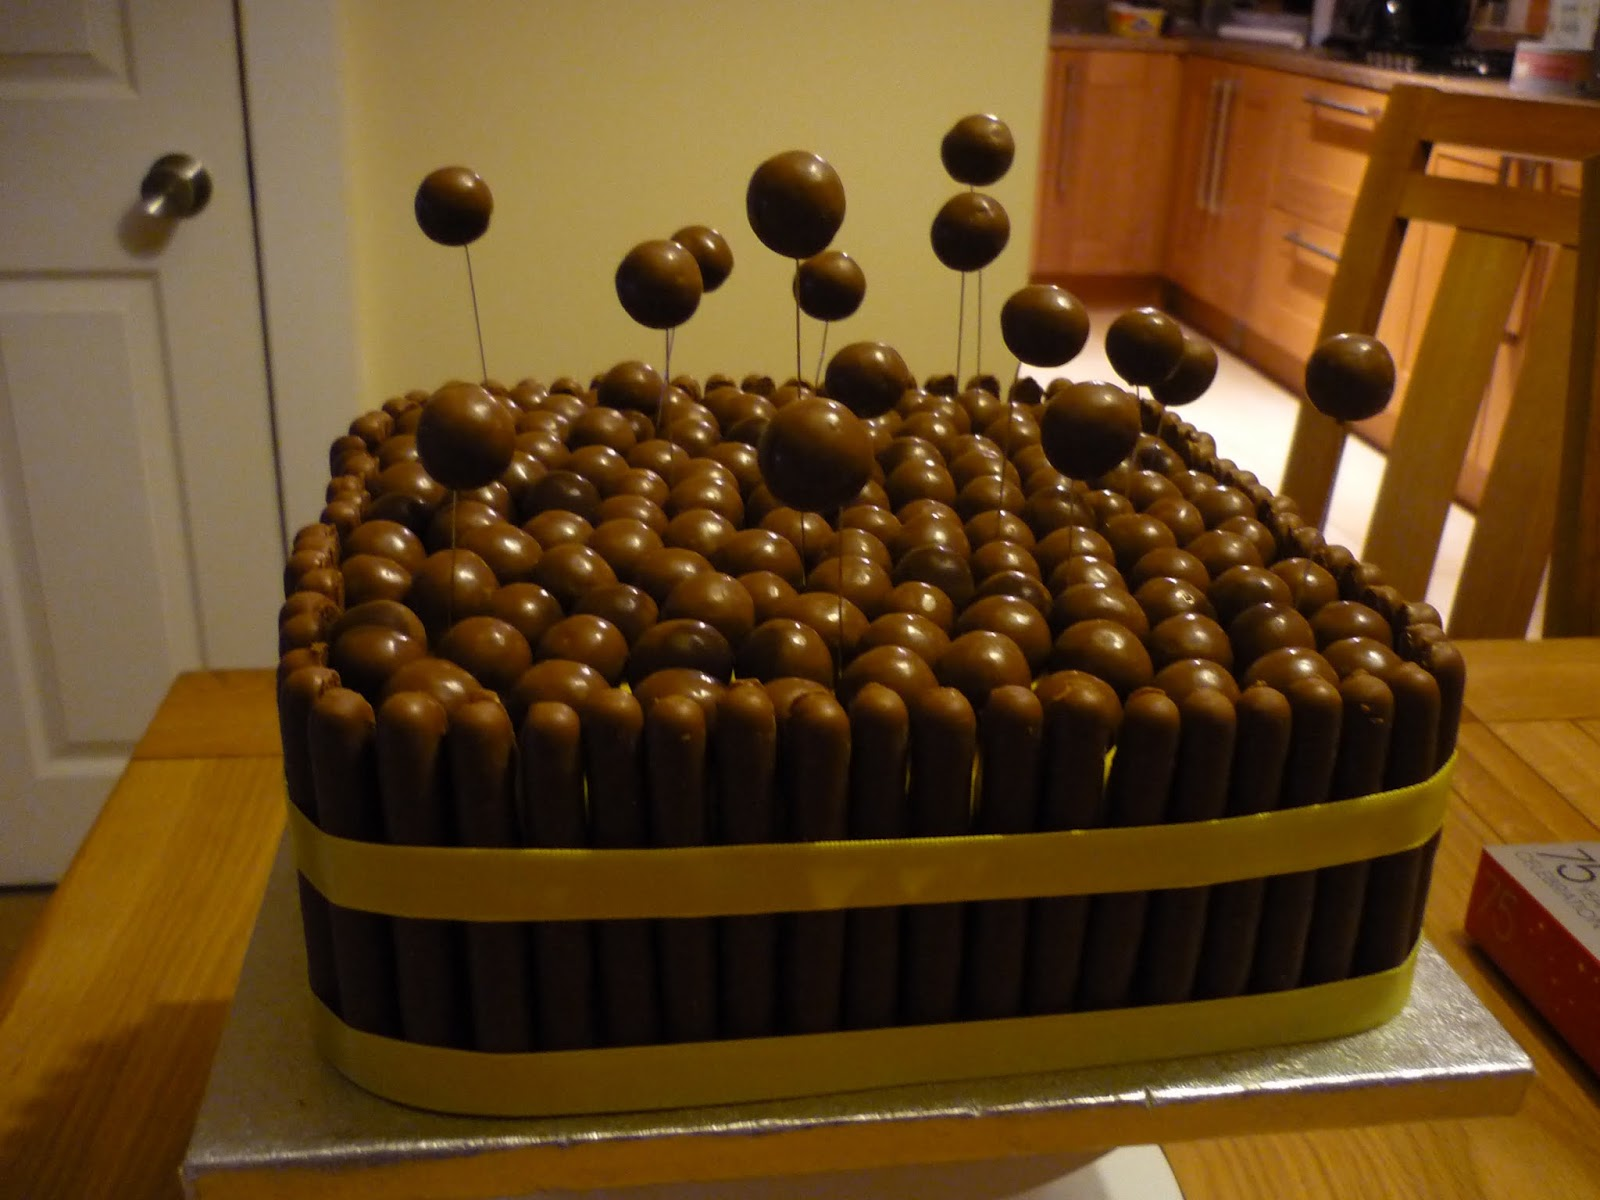 Best Chocolate Cake Decorating Ideas : Eat Cakes by Susan: My brothers birthday cake